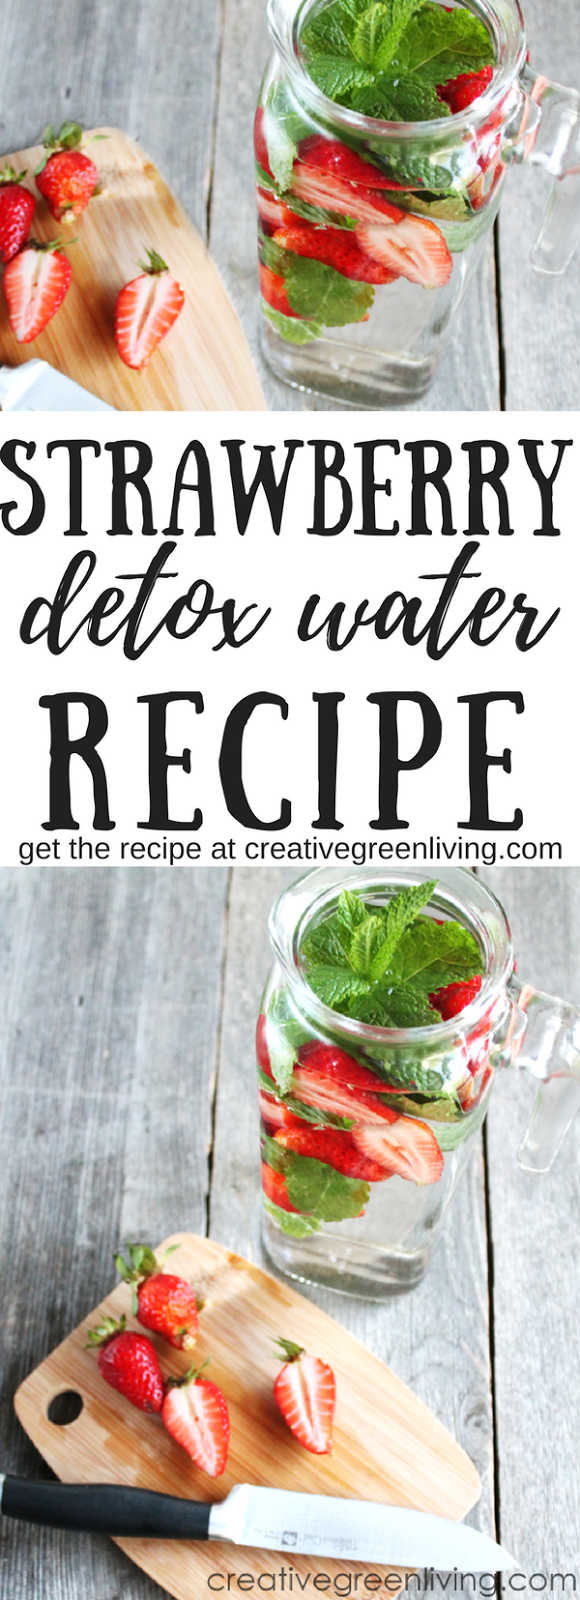 Delicious strawberry mint infused water recipe aka detox water created using the recipes generator forumfinder Images